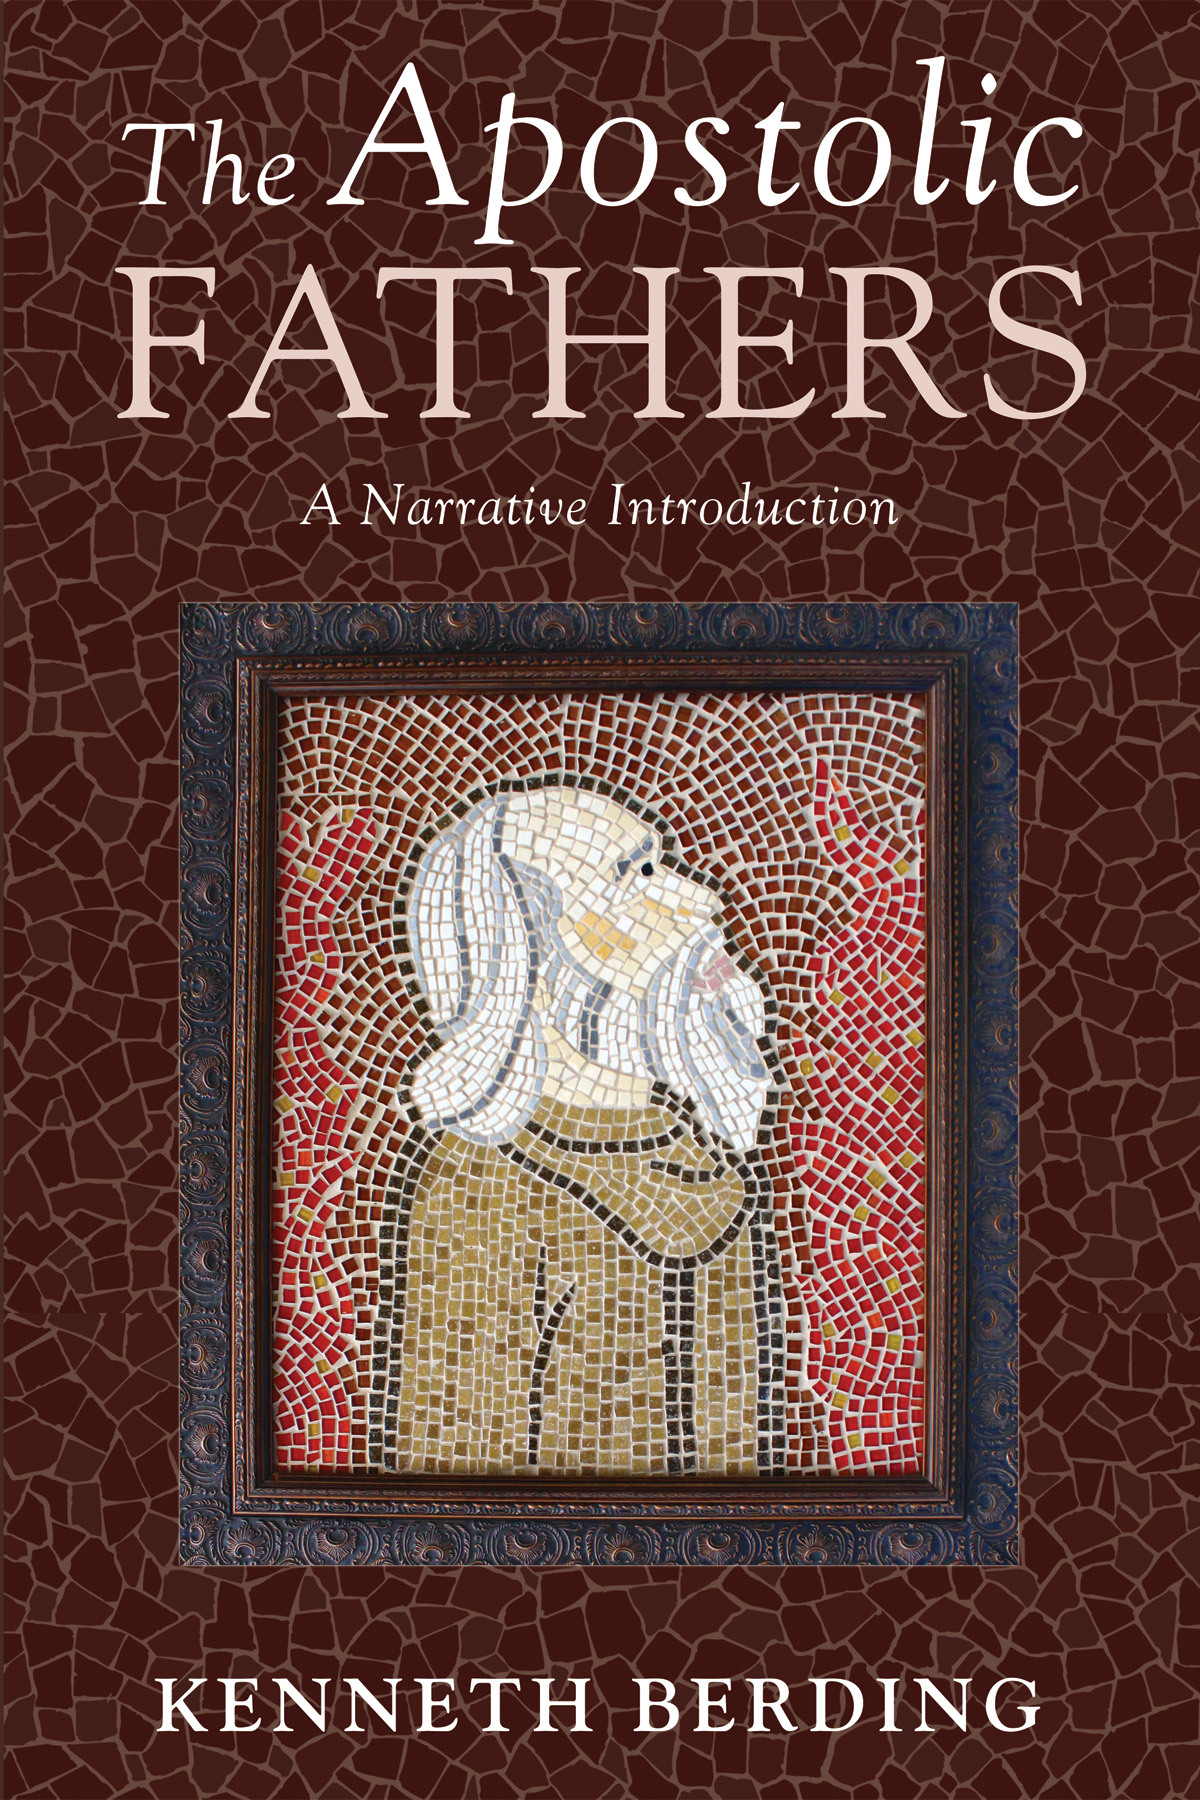 The Apostolic Fathers: A Narrative Introduction